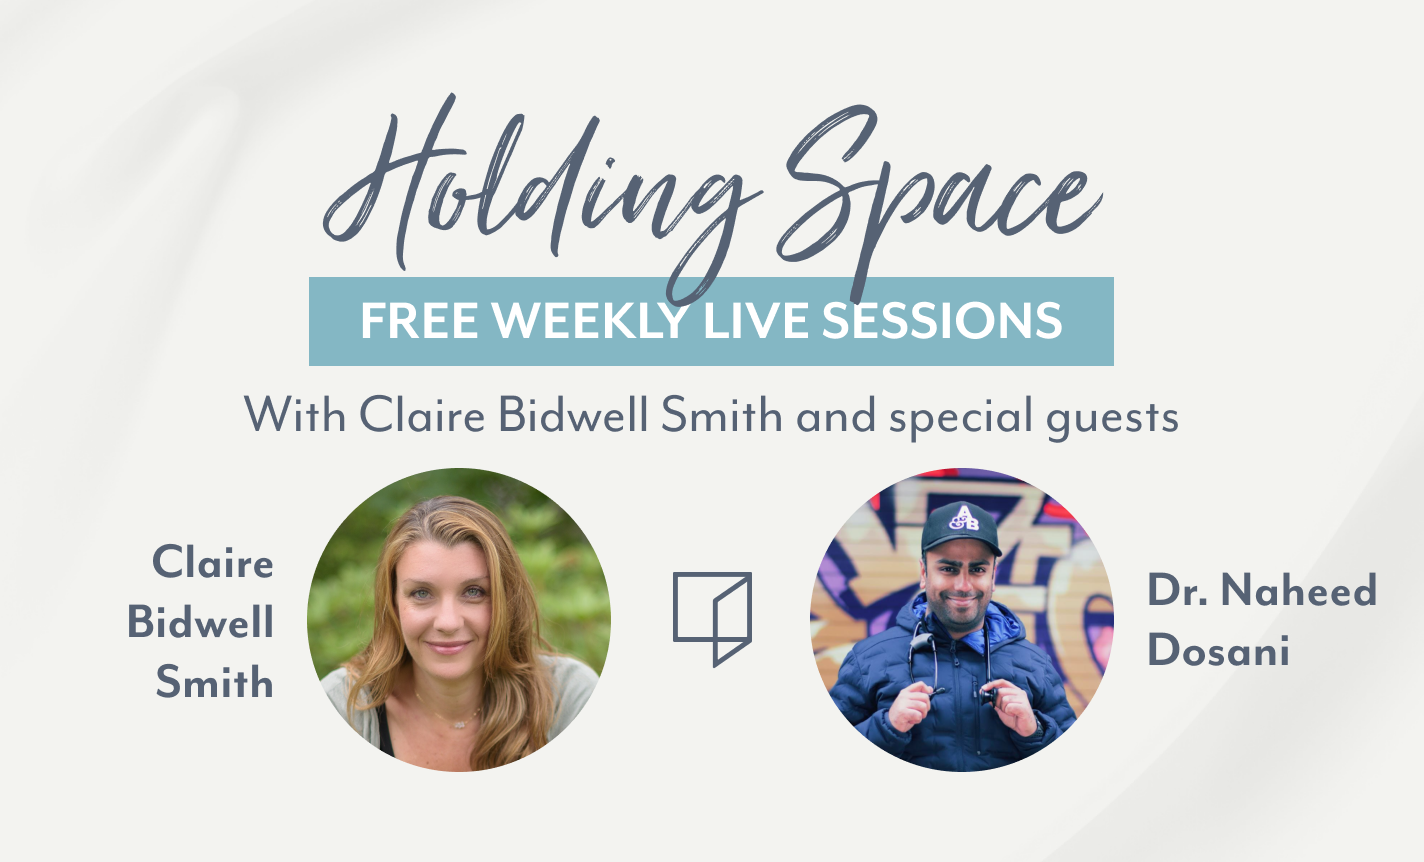 Holding Space: Claire Bidwell Smith & Dr. Naheed Dosani